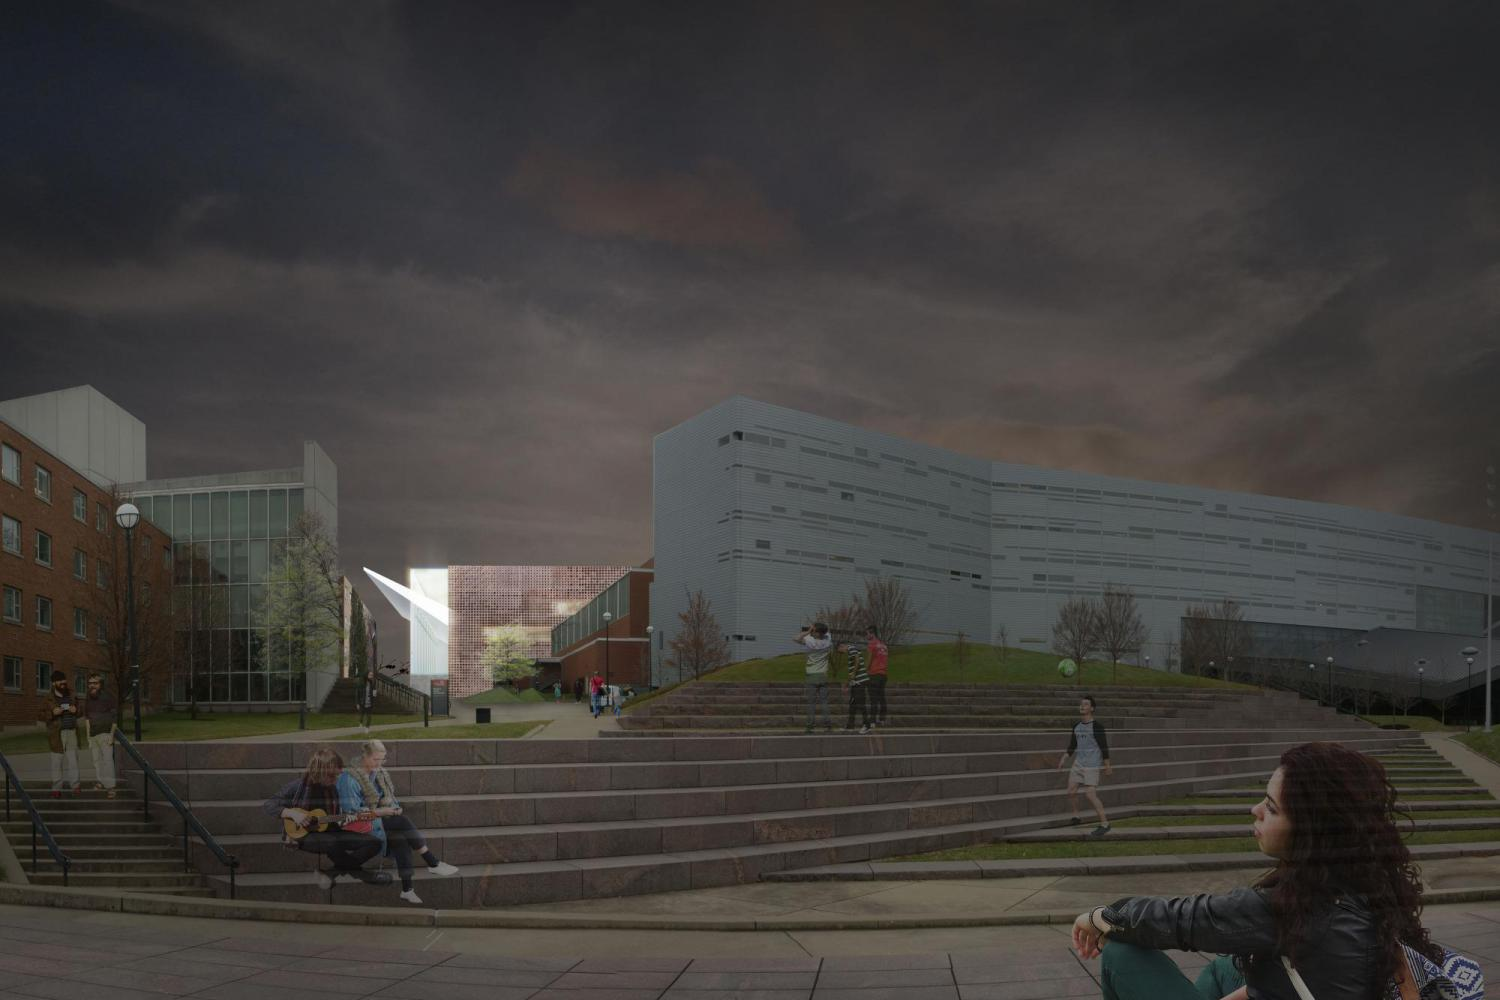 University of Cincinnati Arena Renovation Design Competition